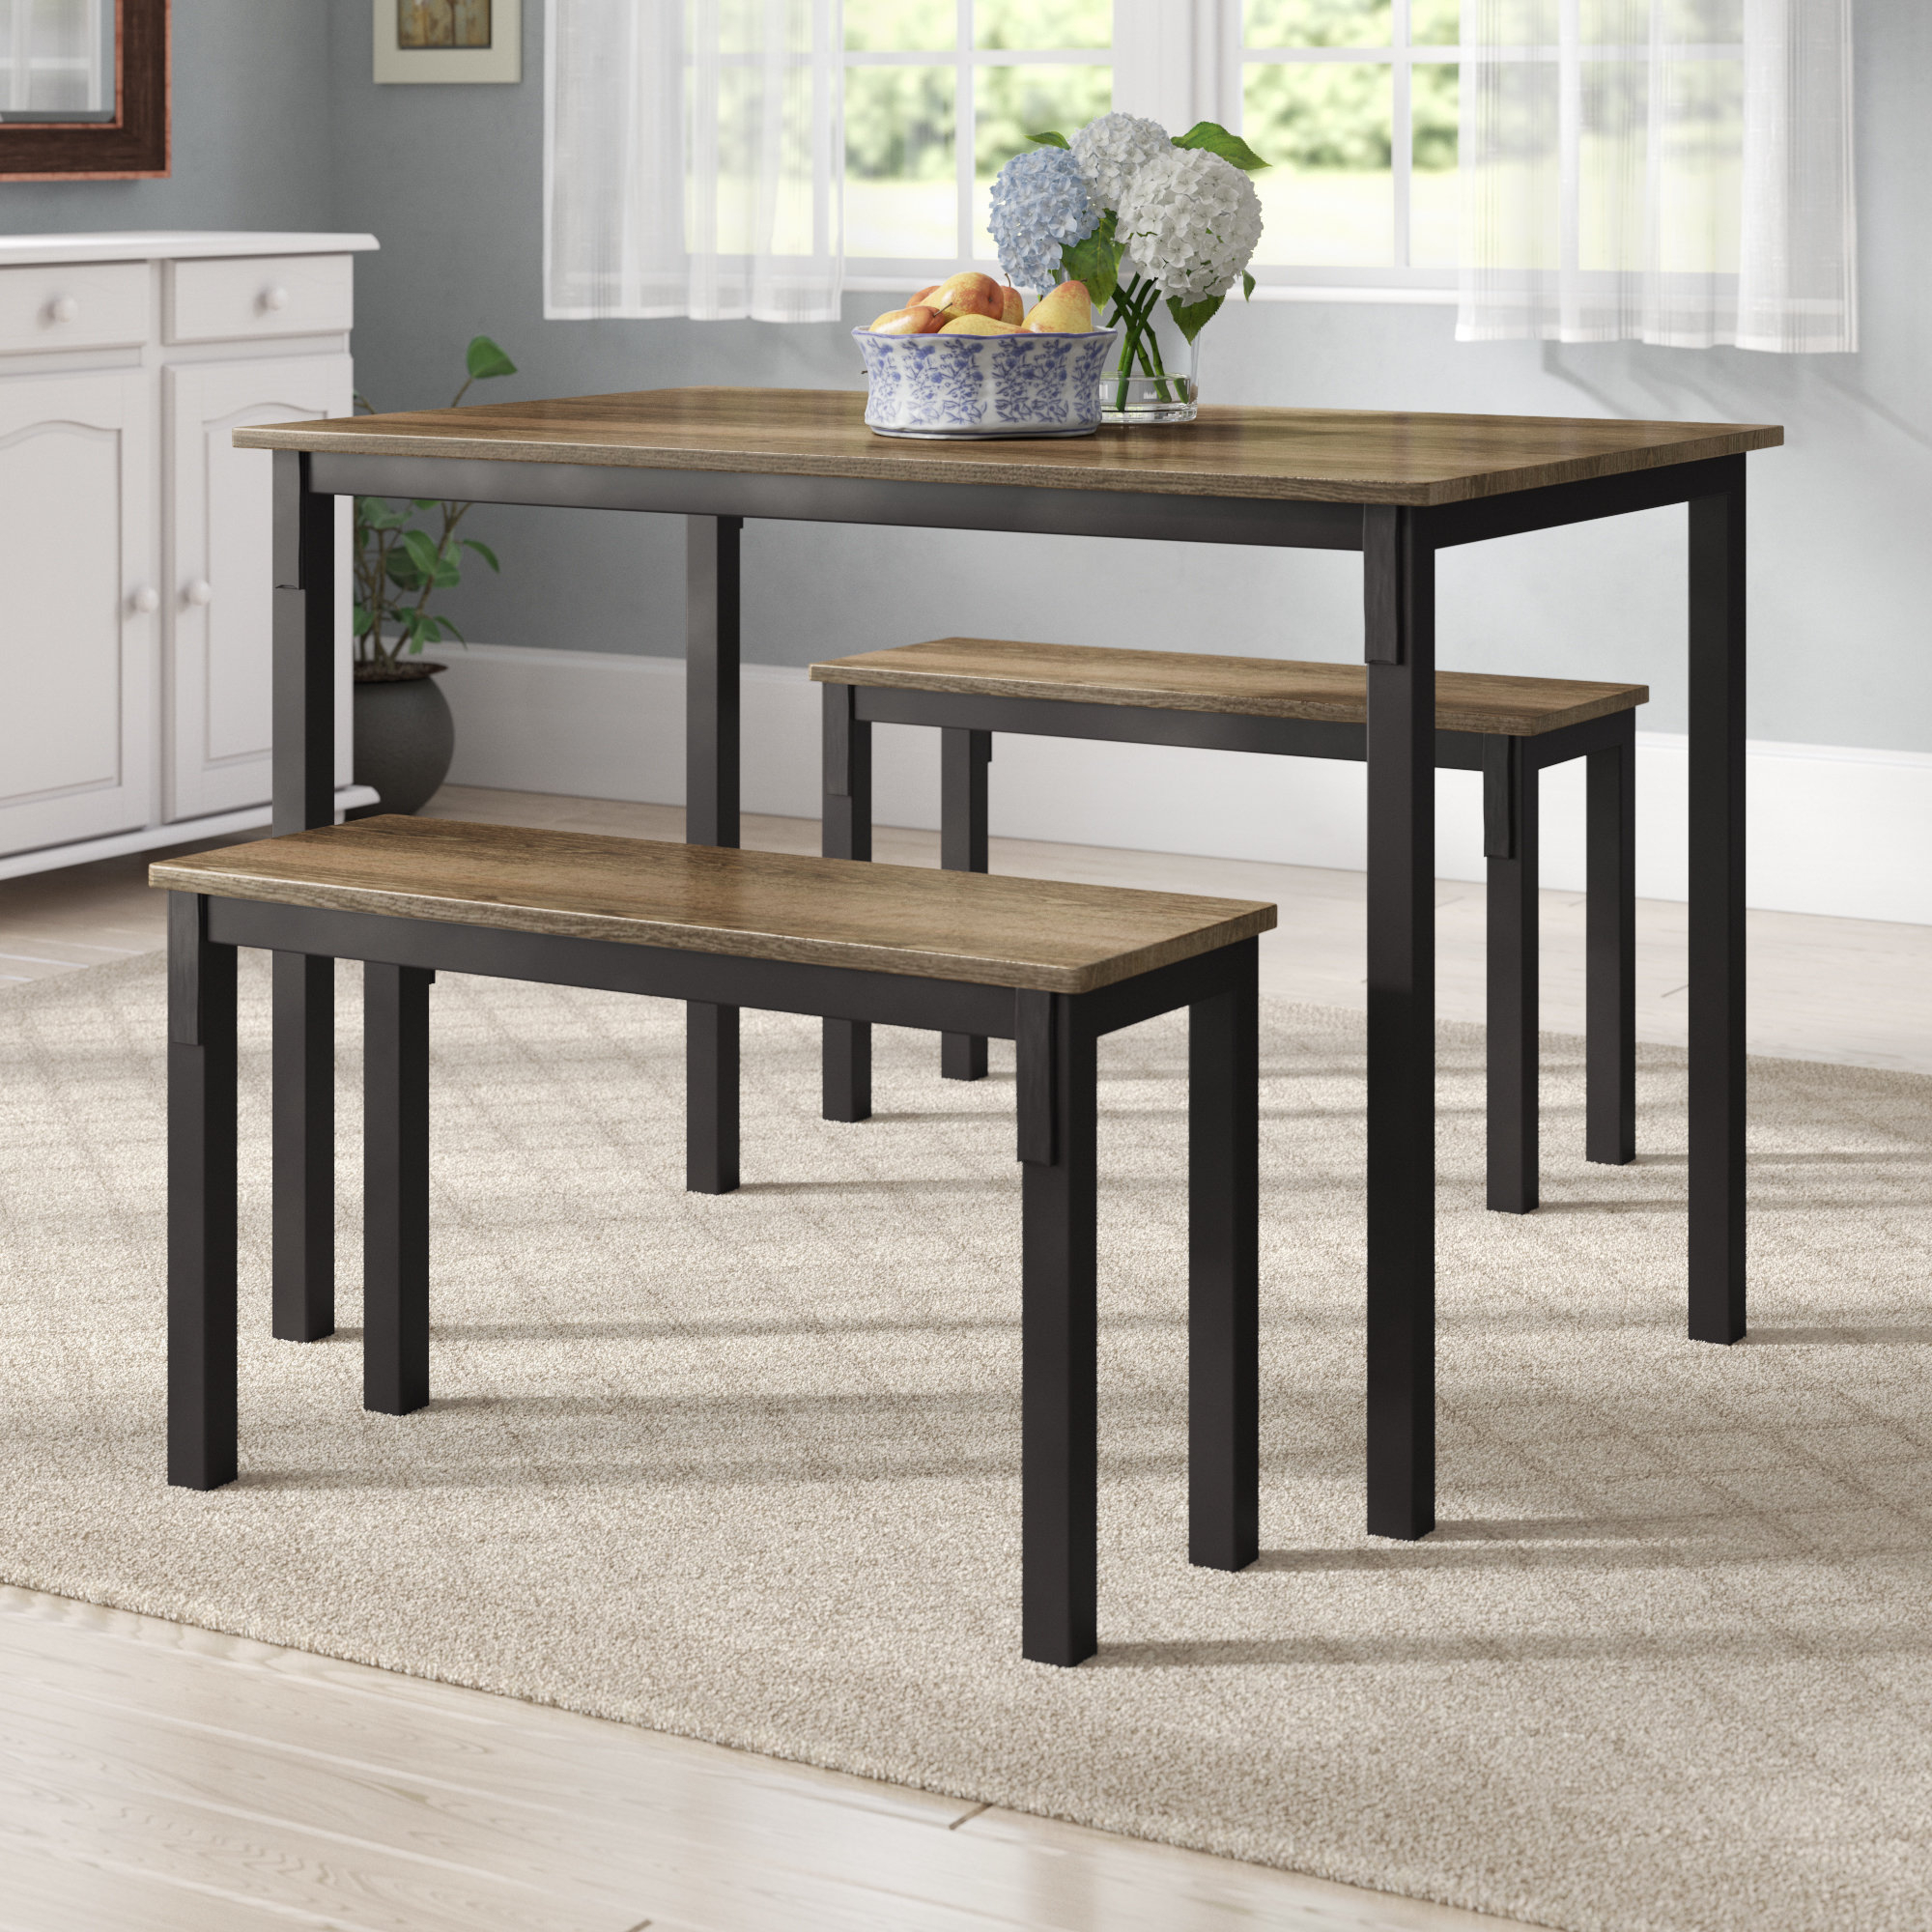 Rossiter 3 Piece Dining Set Regarding Famous 3 Piece Dining Sets (View 2 of 20)